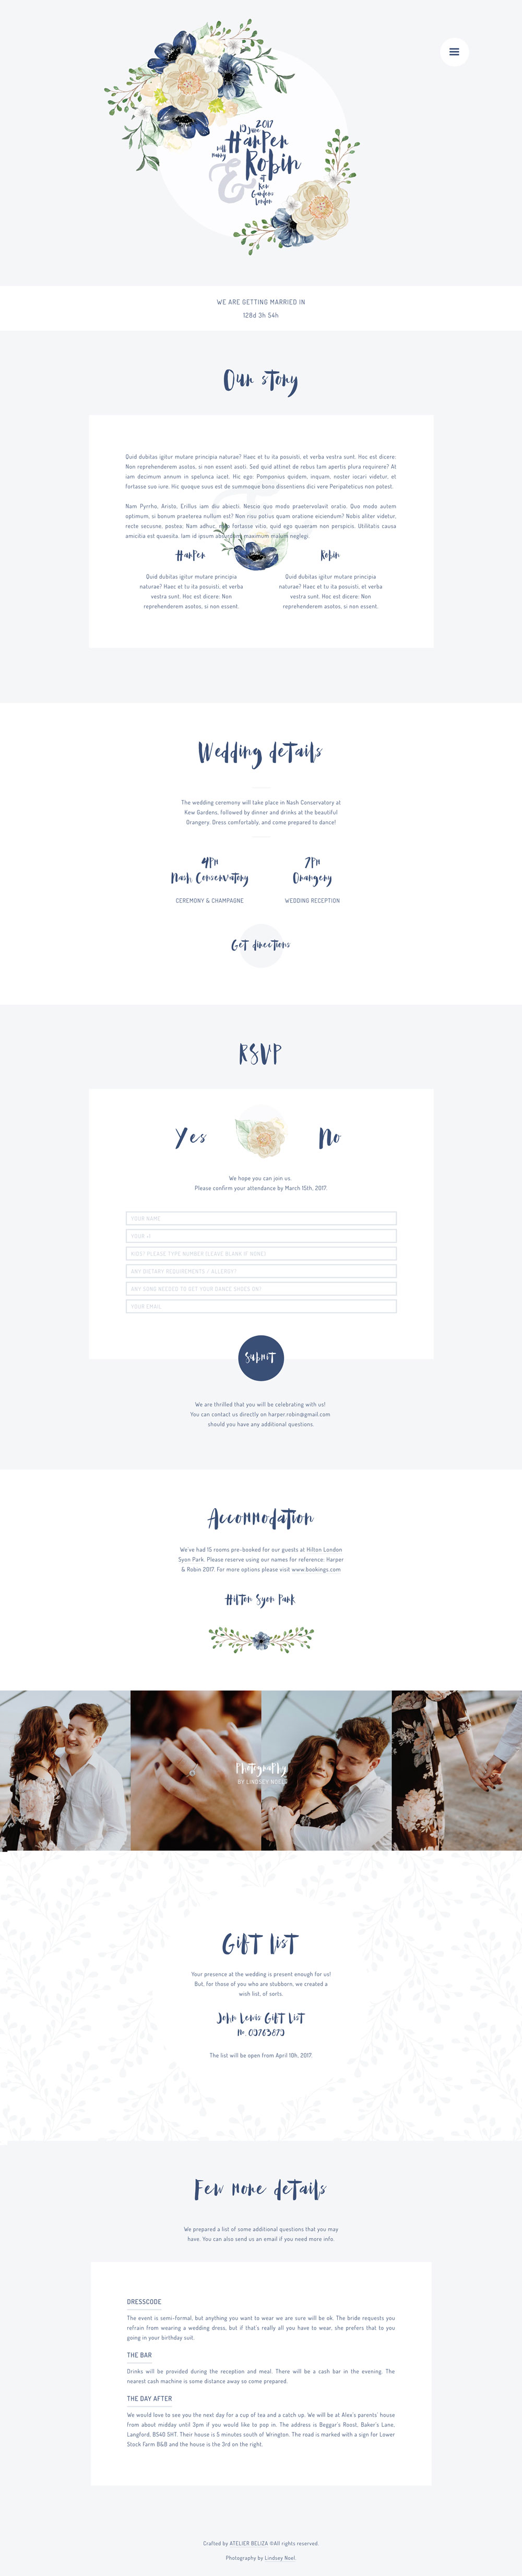 Wedding website template - Ingaro - featuring couples' engagement photos, wedding location map, online RSVP and venue information for the wedding guests.